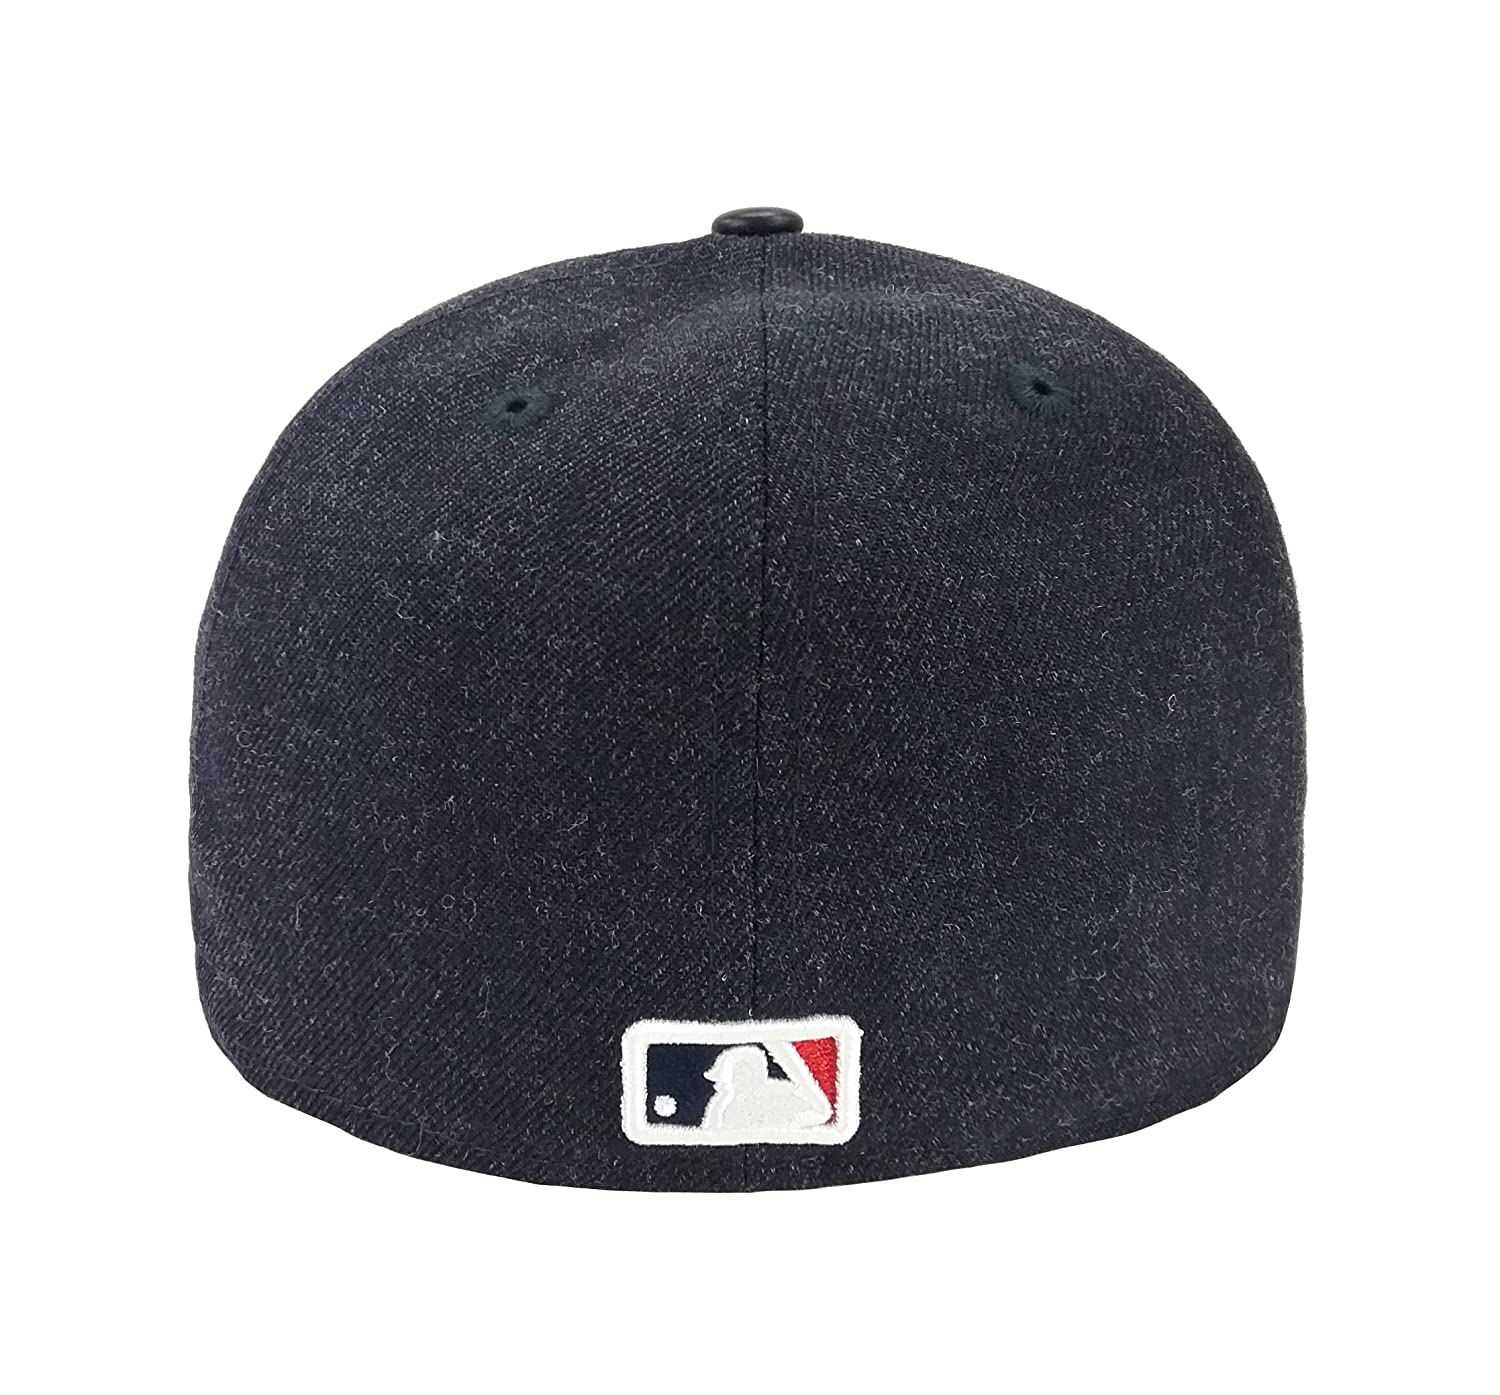 best service e3abf 69703 Amazon.com  New Era 59Fifty Hat Boston Red Sox Pin 8X MLB Navy Blue  Official Team Color Cap  Clothing